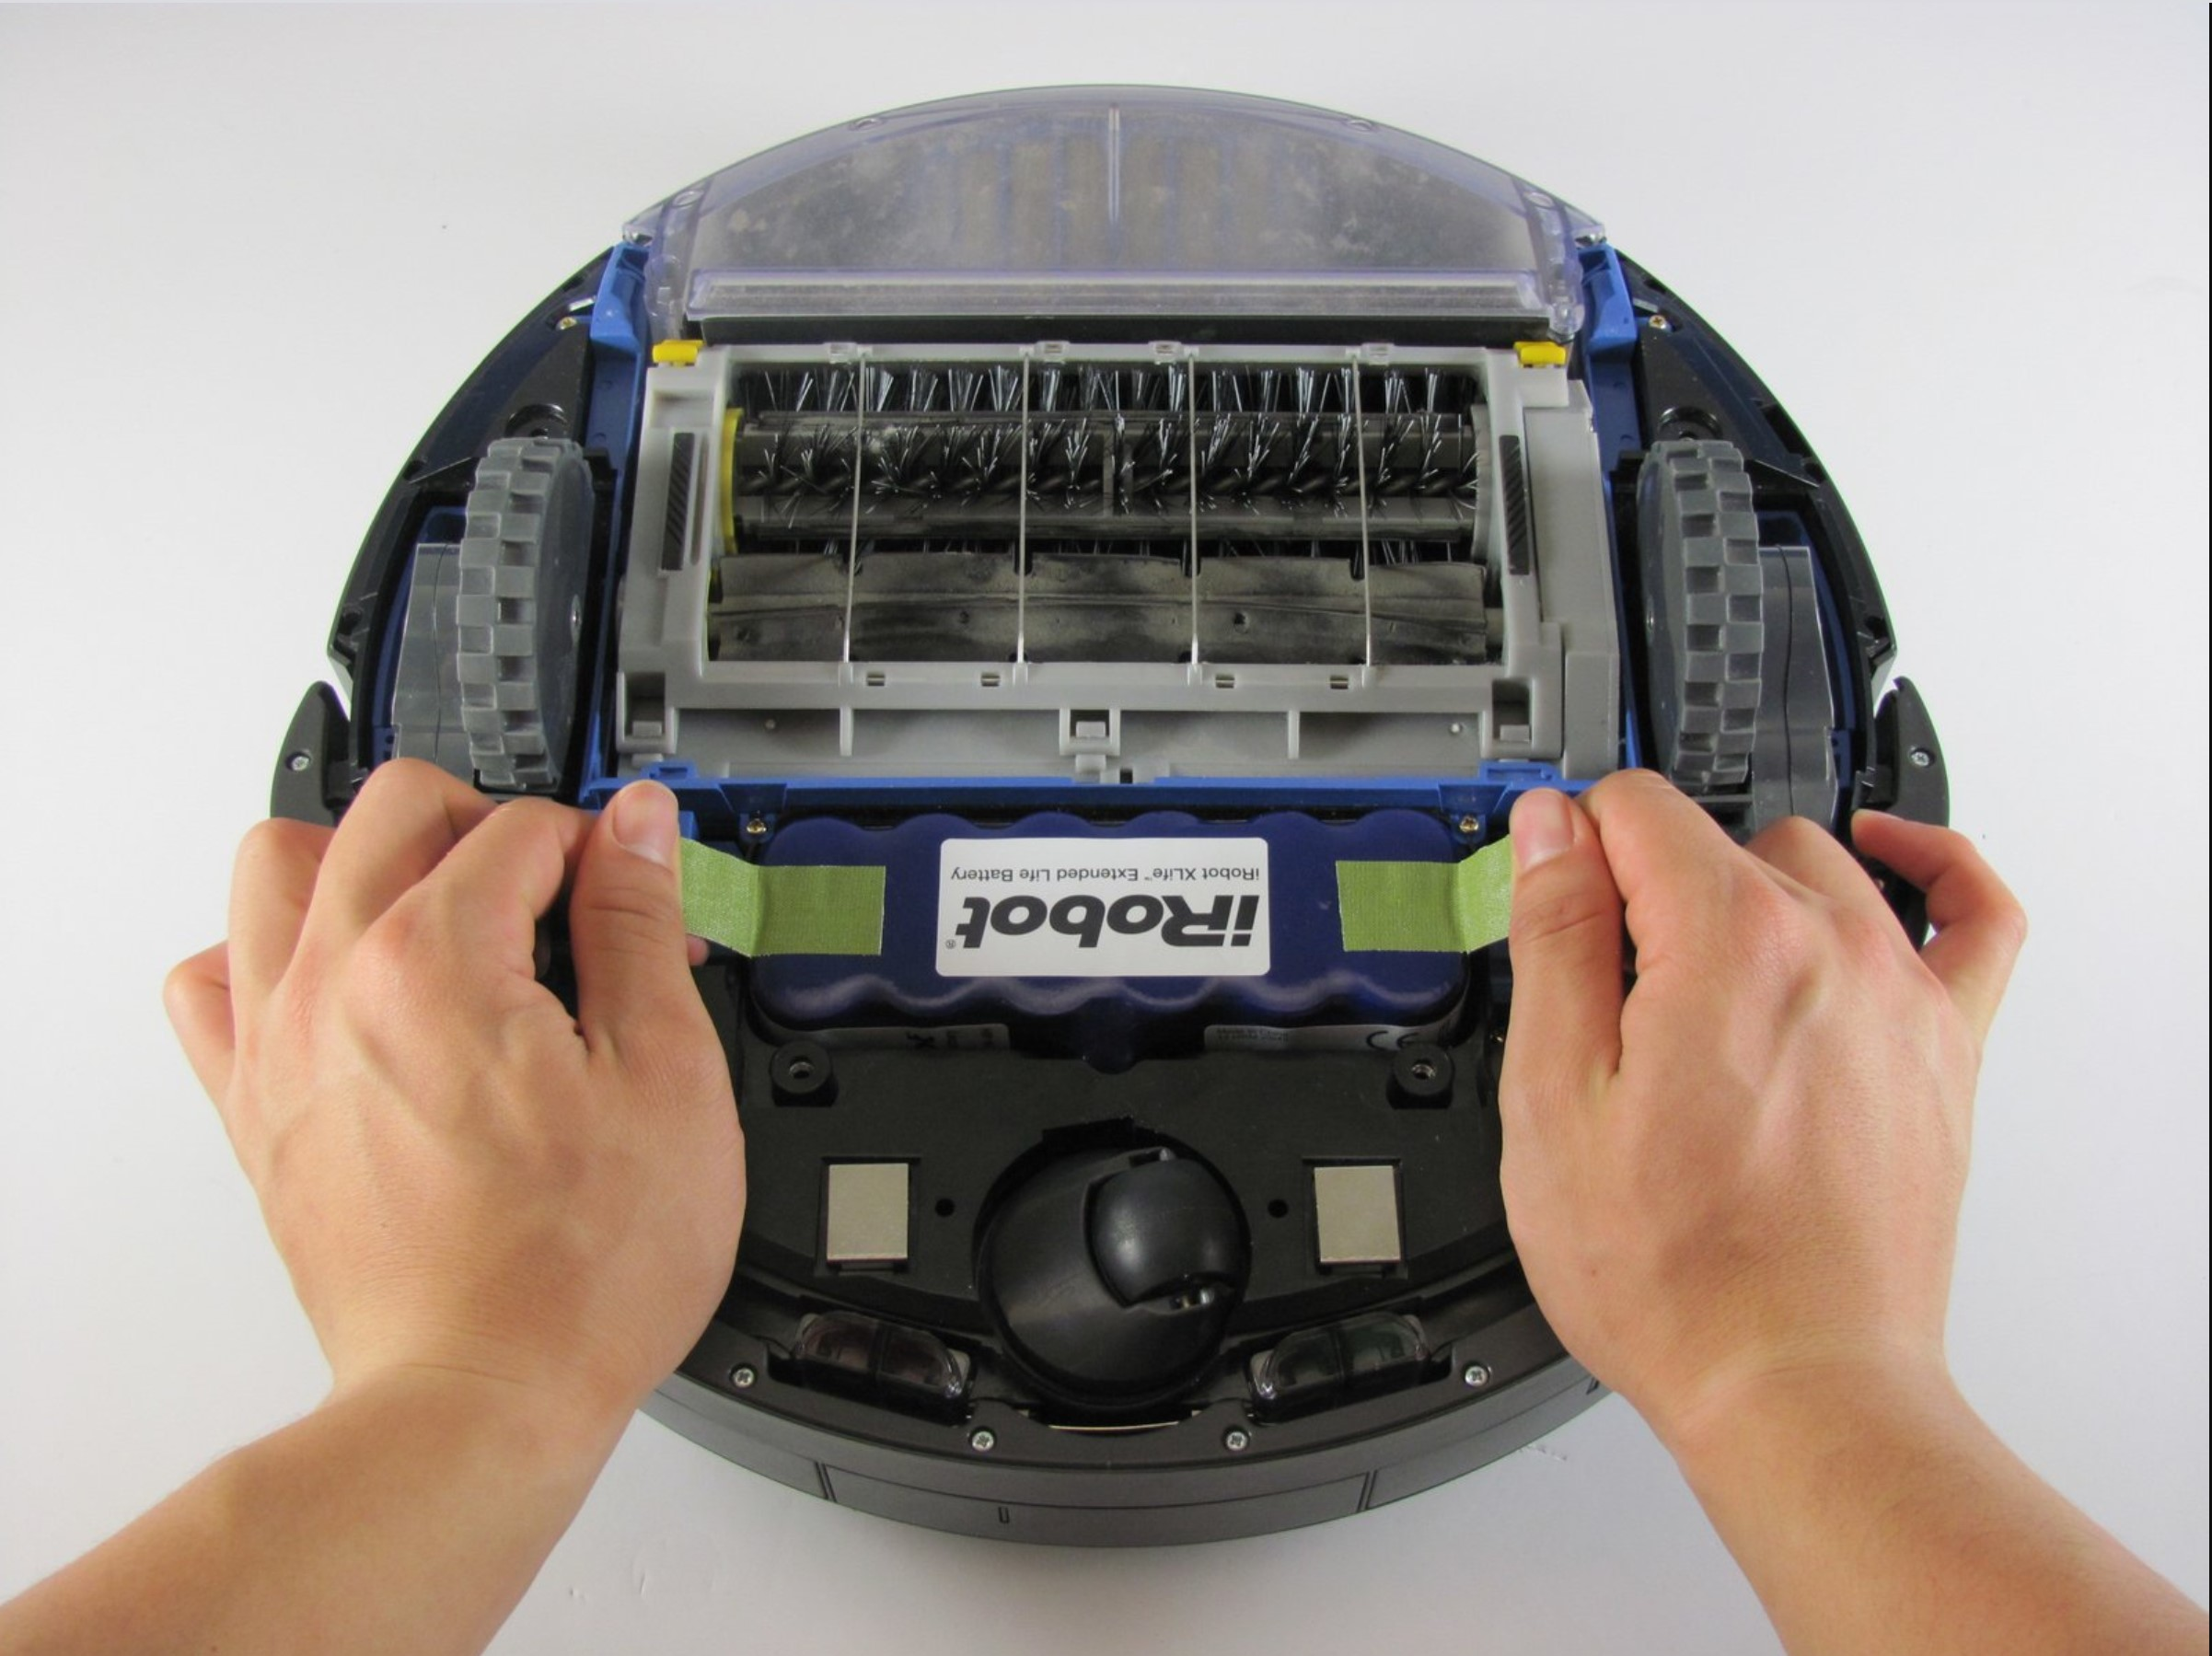 roomba-replacing the battery